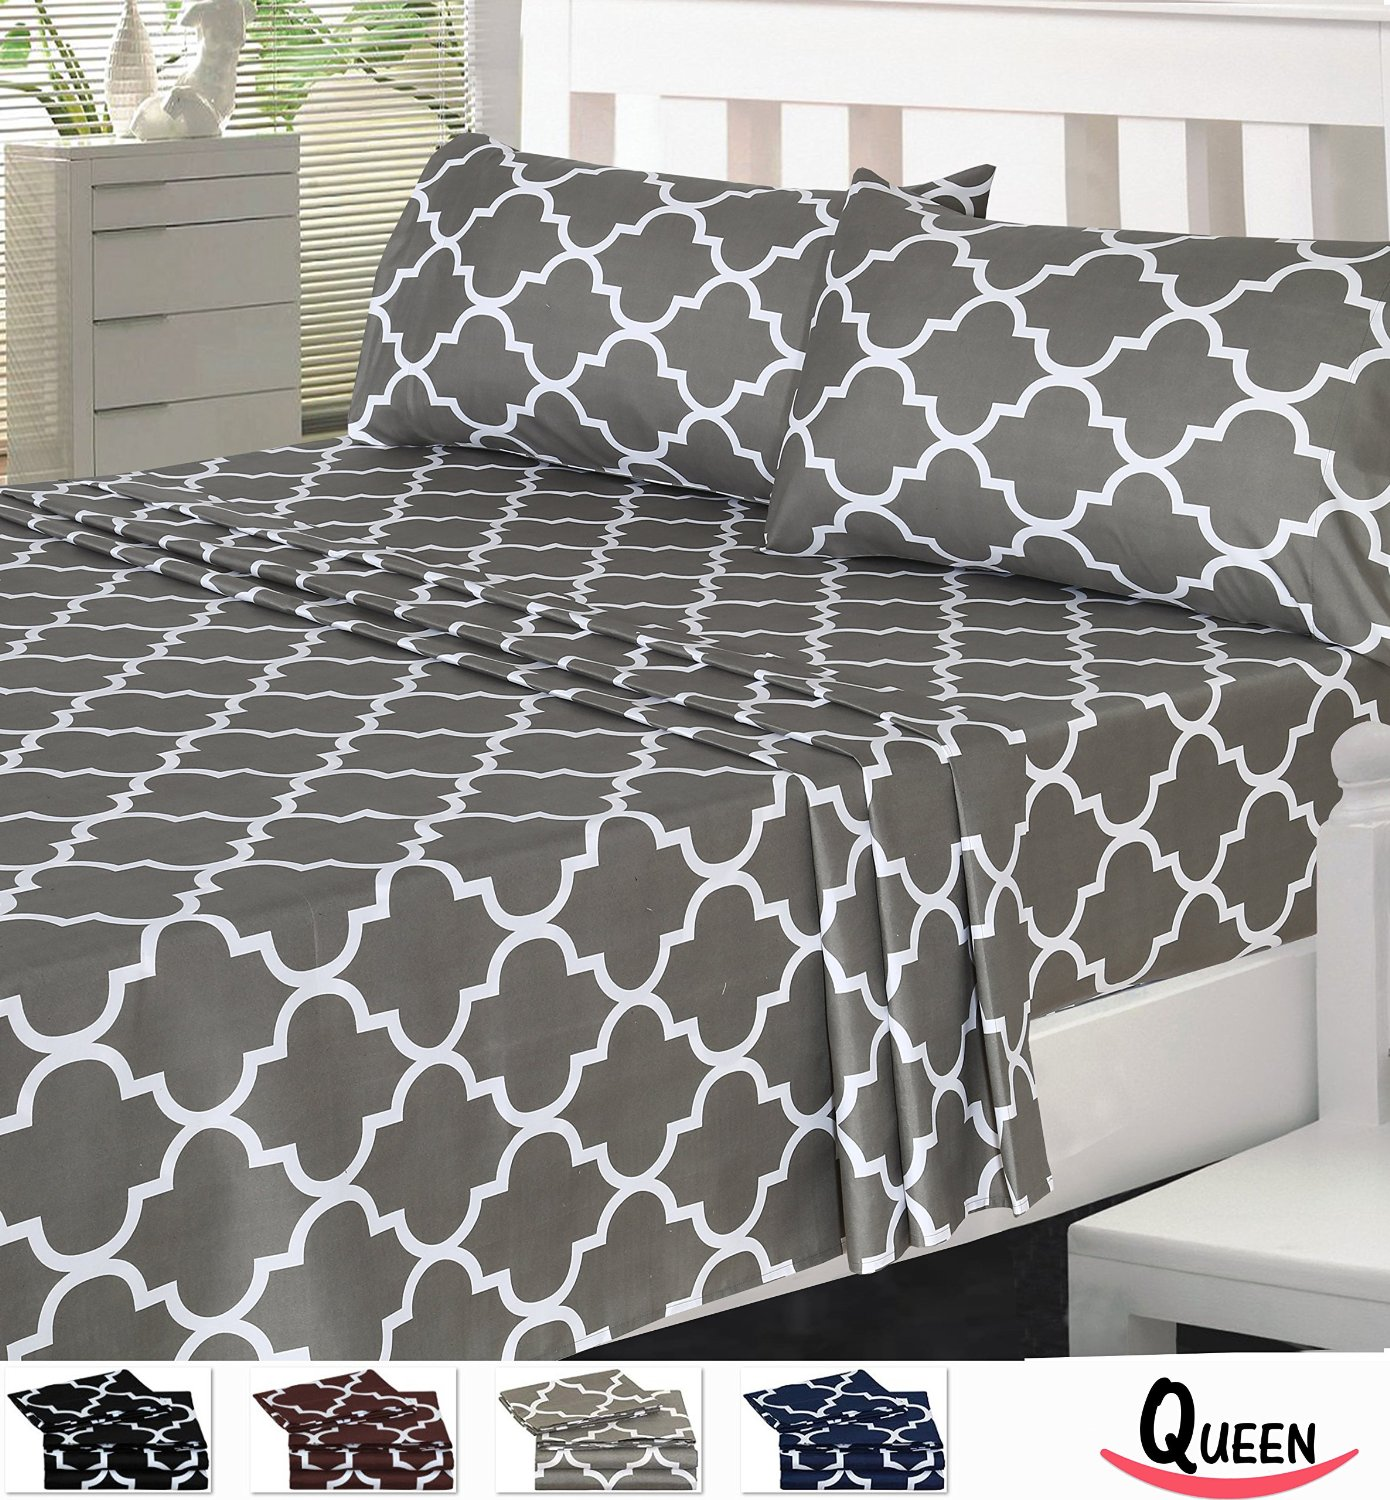 Cheap Sheet Sets Charcoal Grey Comforter And Bedding Sets